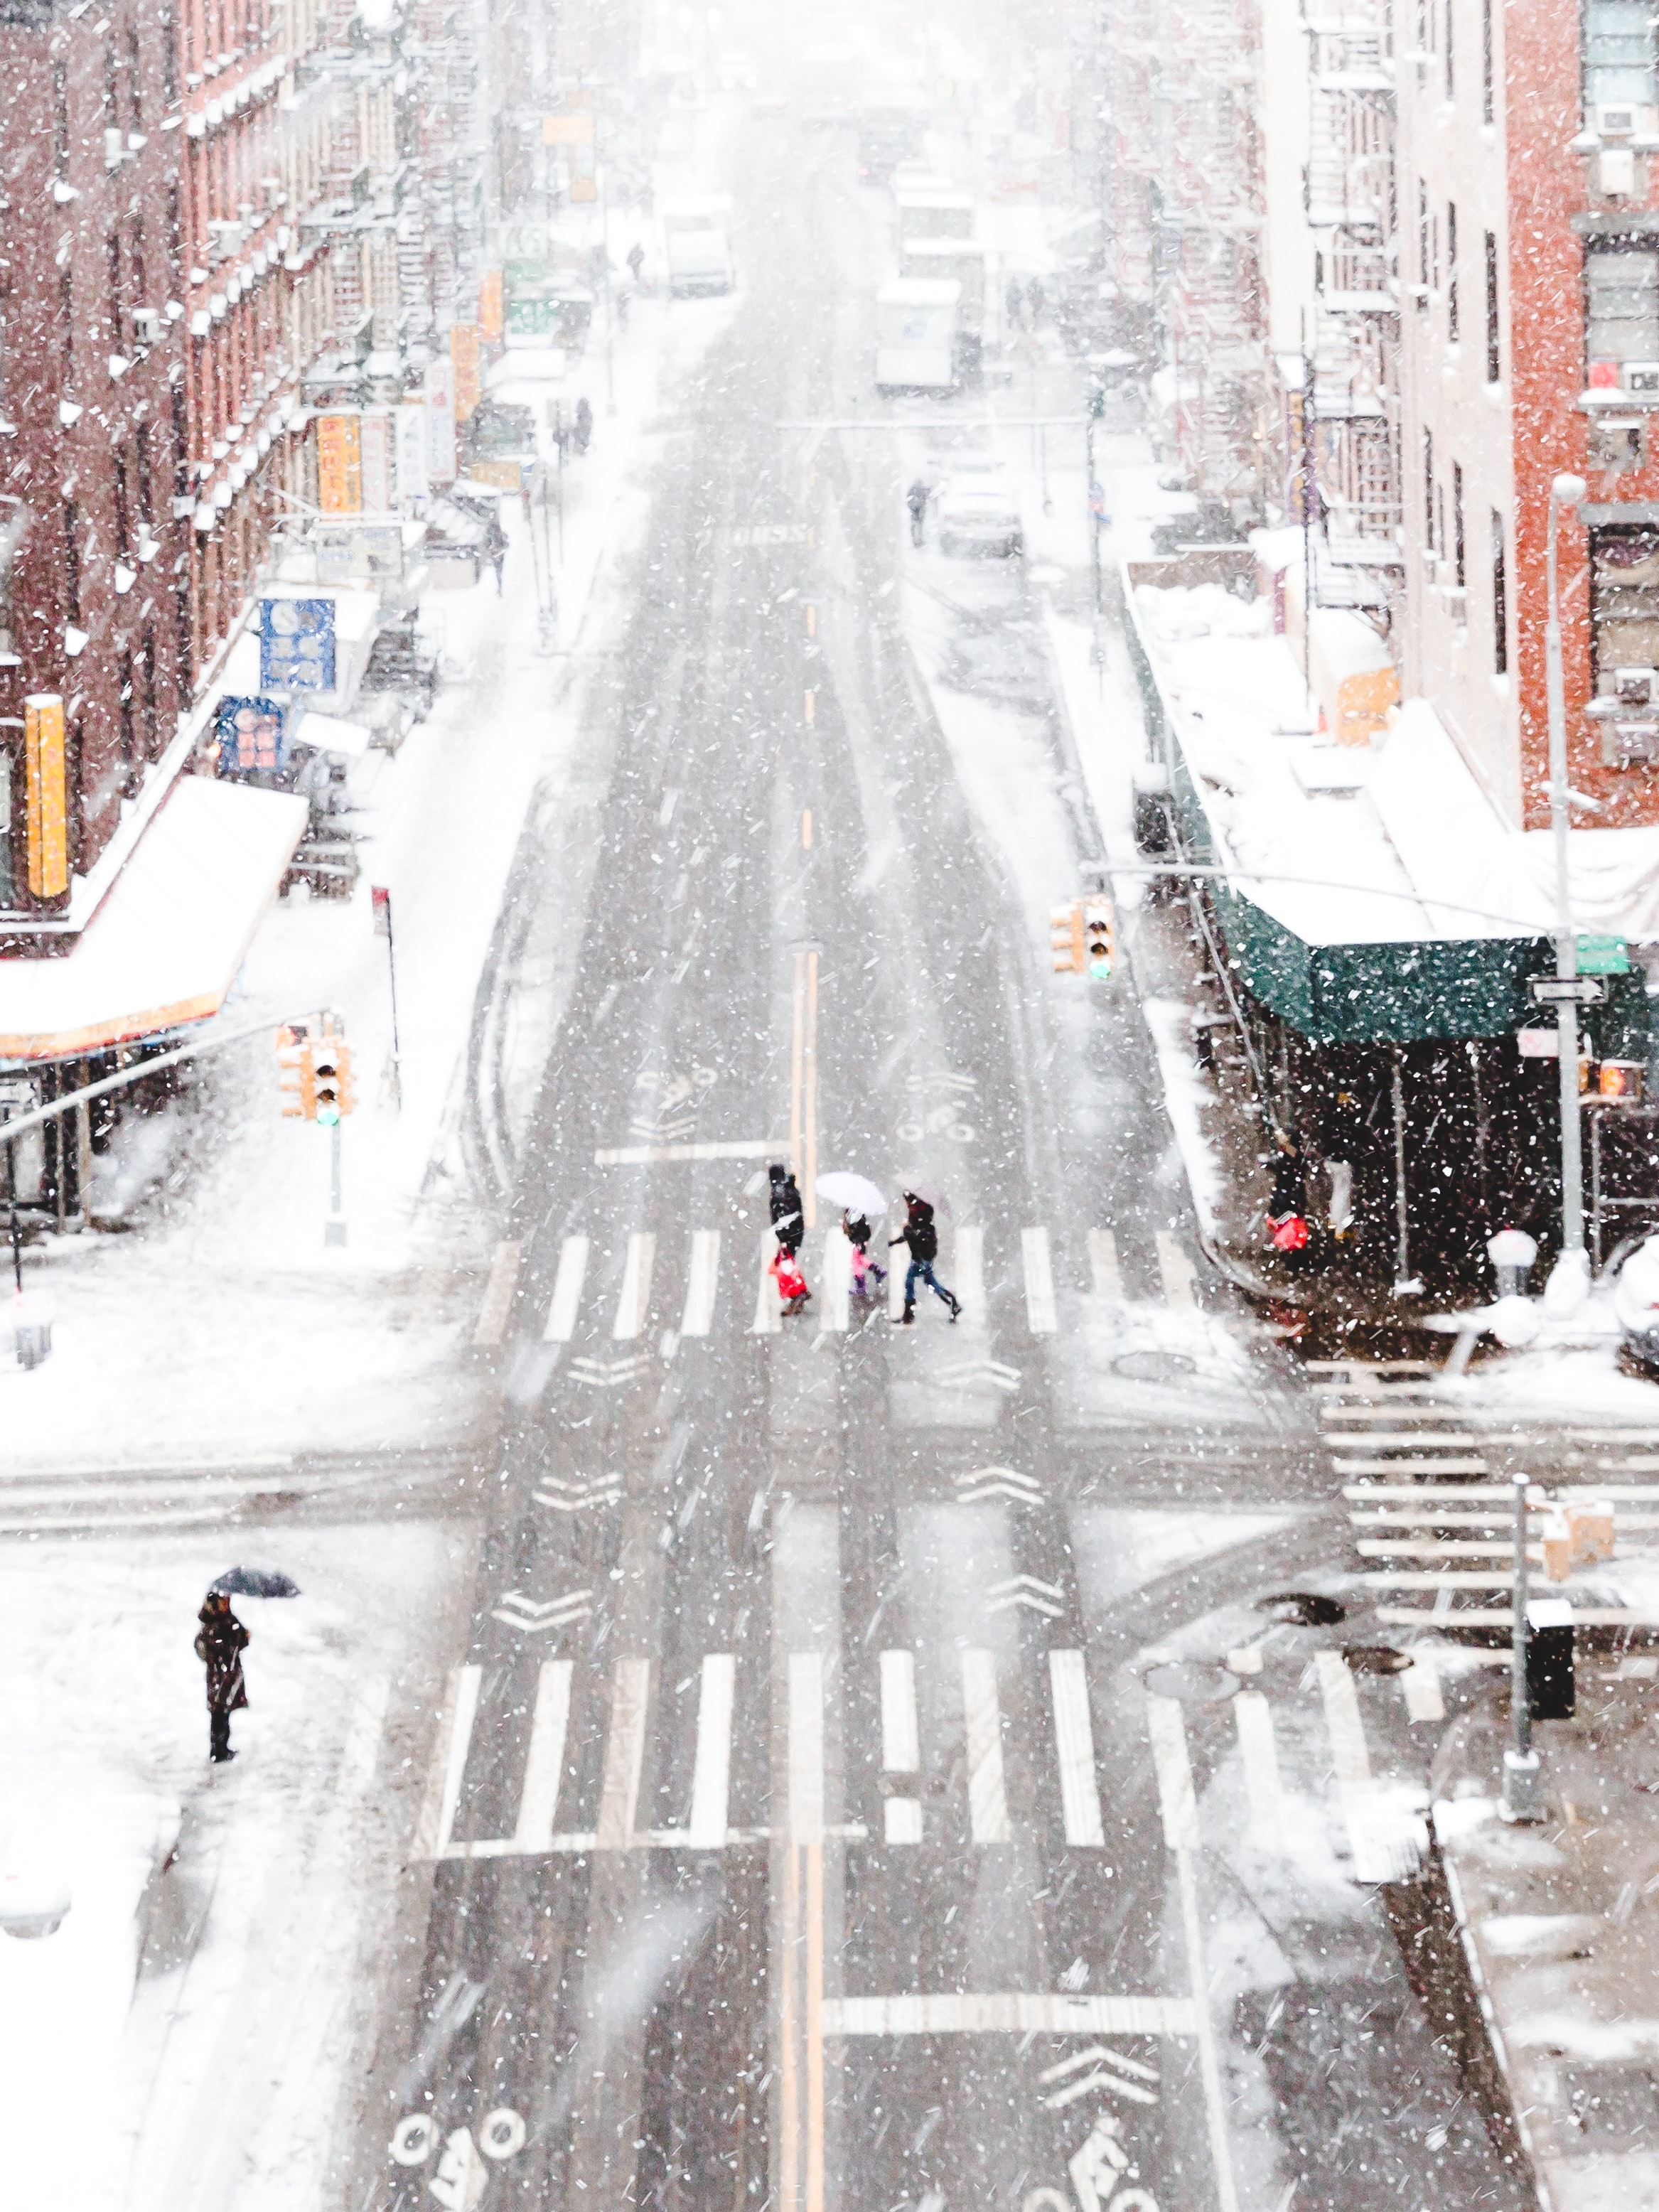 people crossing the street while snow raining